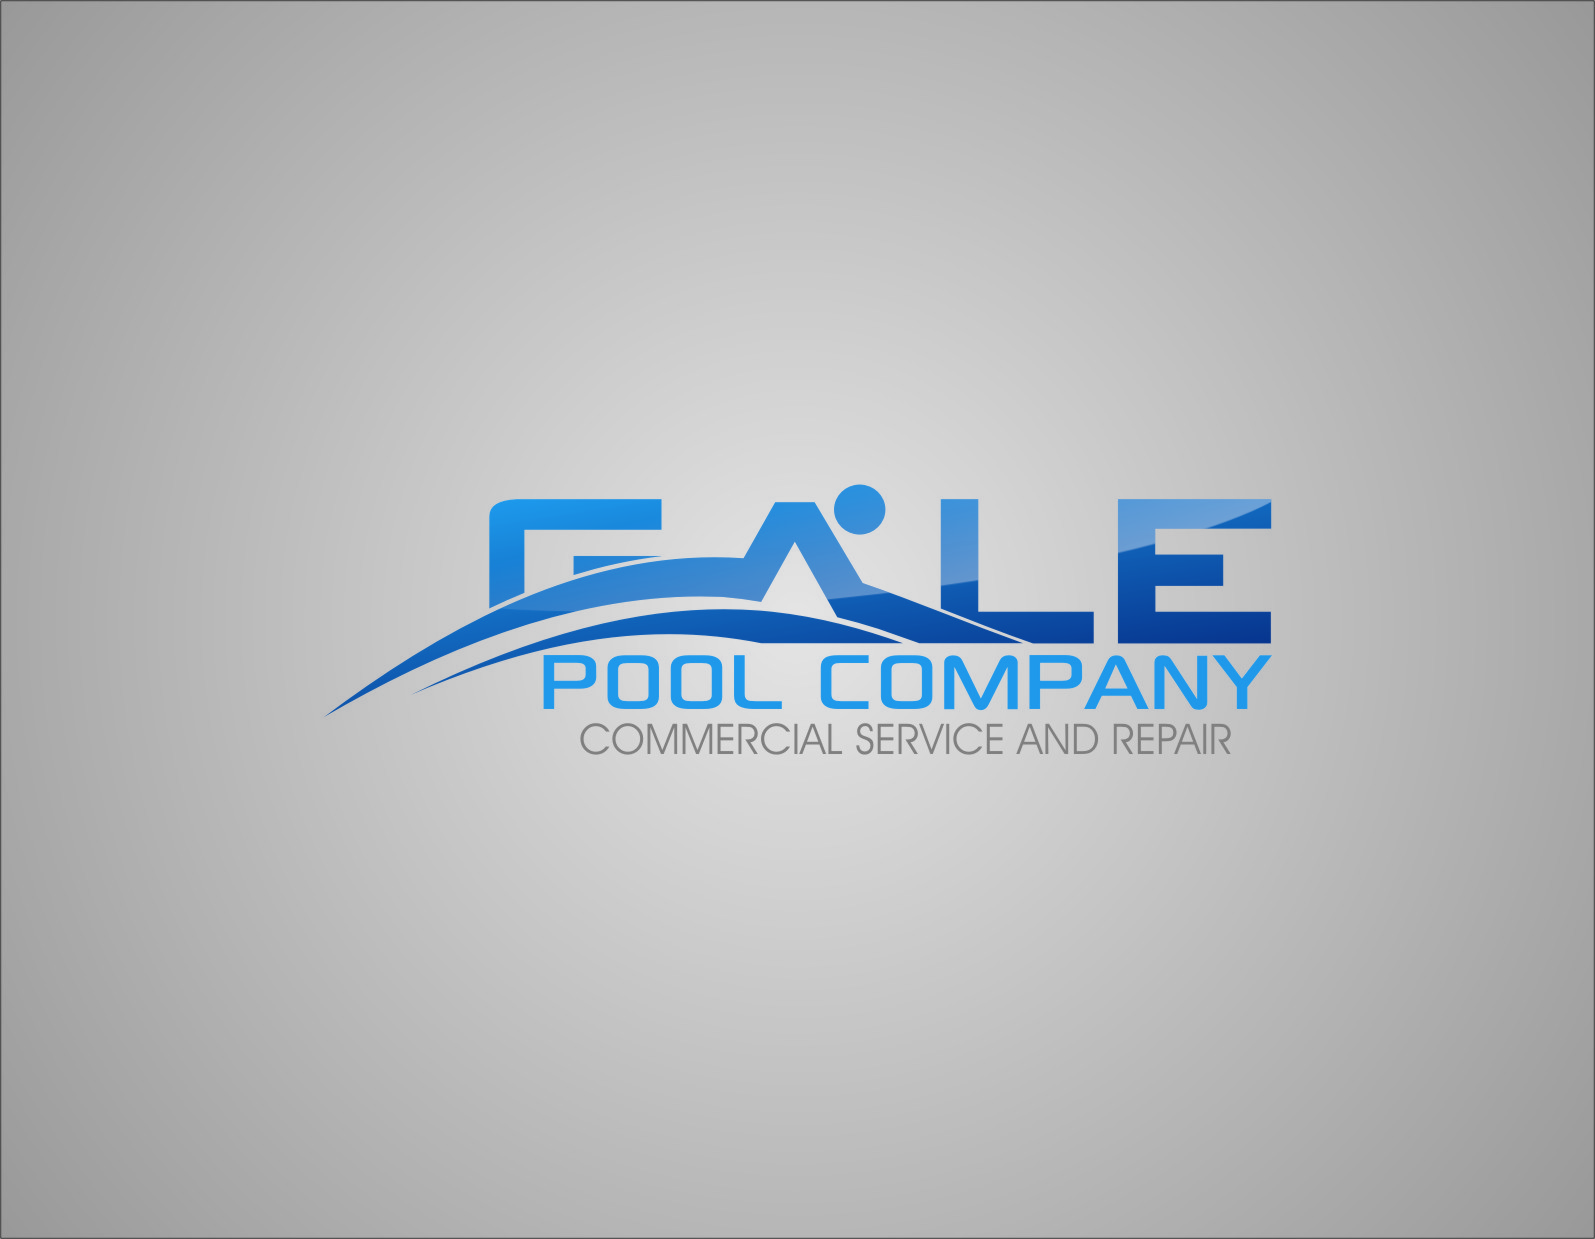 Logo Design by RasYa Muhammad Athaya - Entry No. 52 in the Logo Design Contest Imaginative Logo Design for Gale Pool Company.